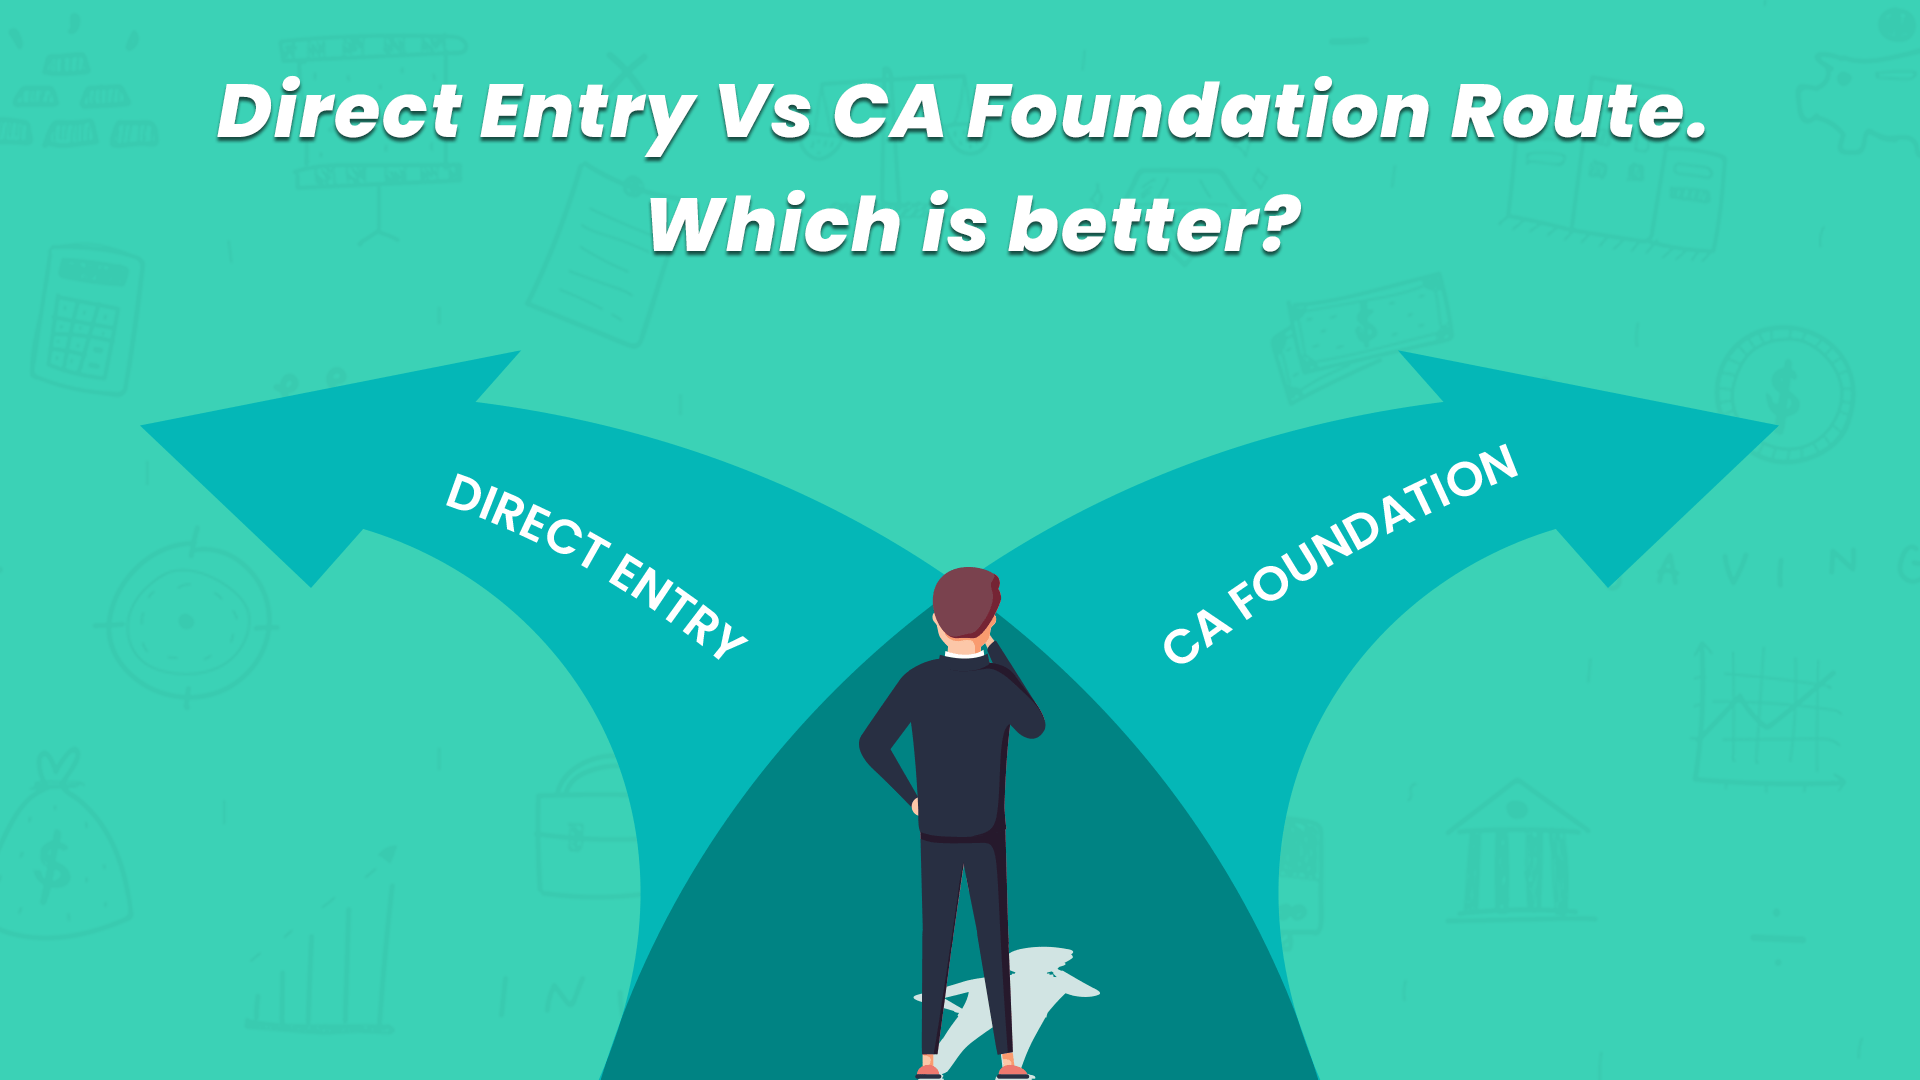 Direct Entry or CA Foundation Route. Which is Better?